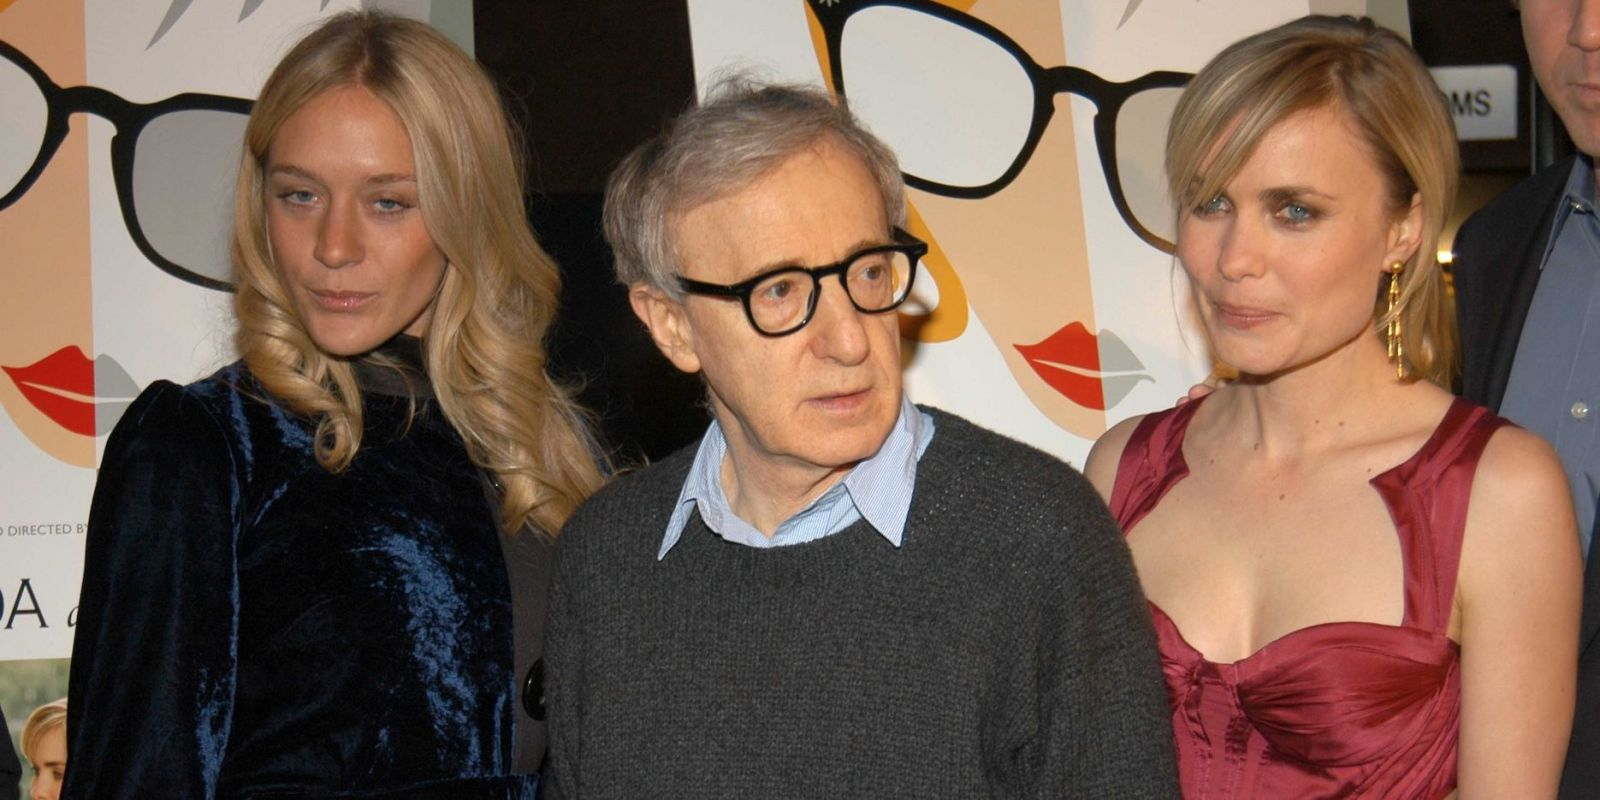 Chloe Sevigny reveals she probably won't work with Woody Allen again